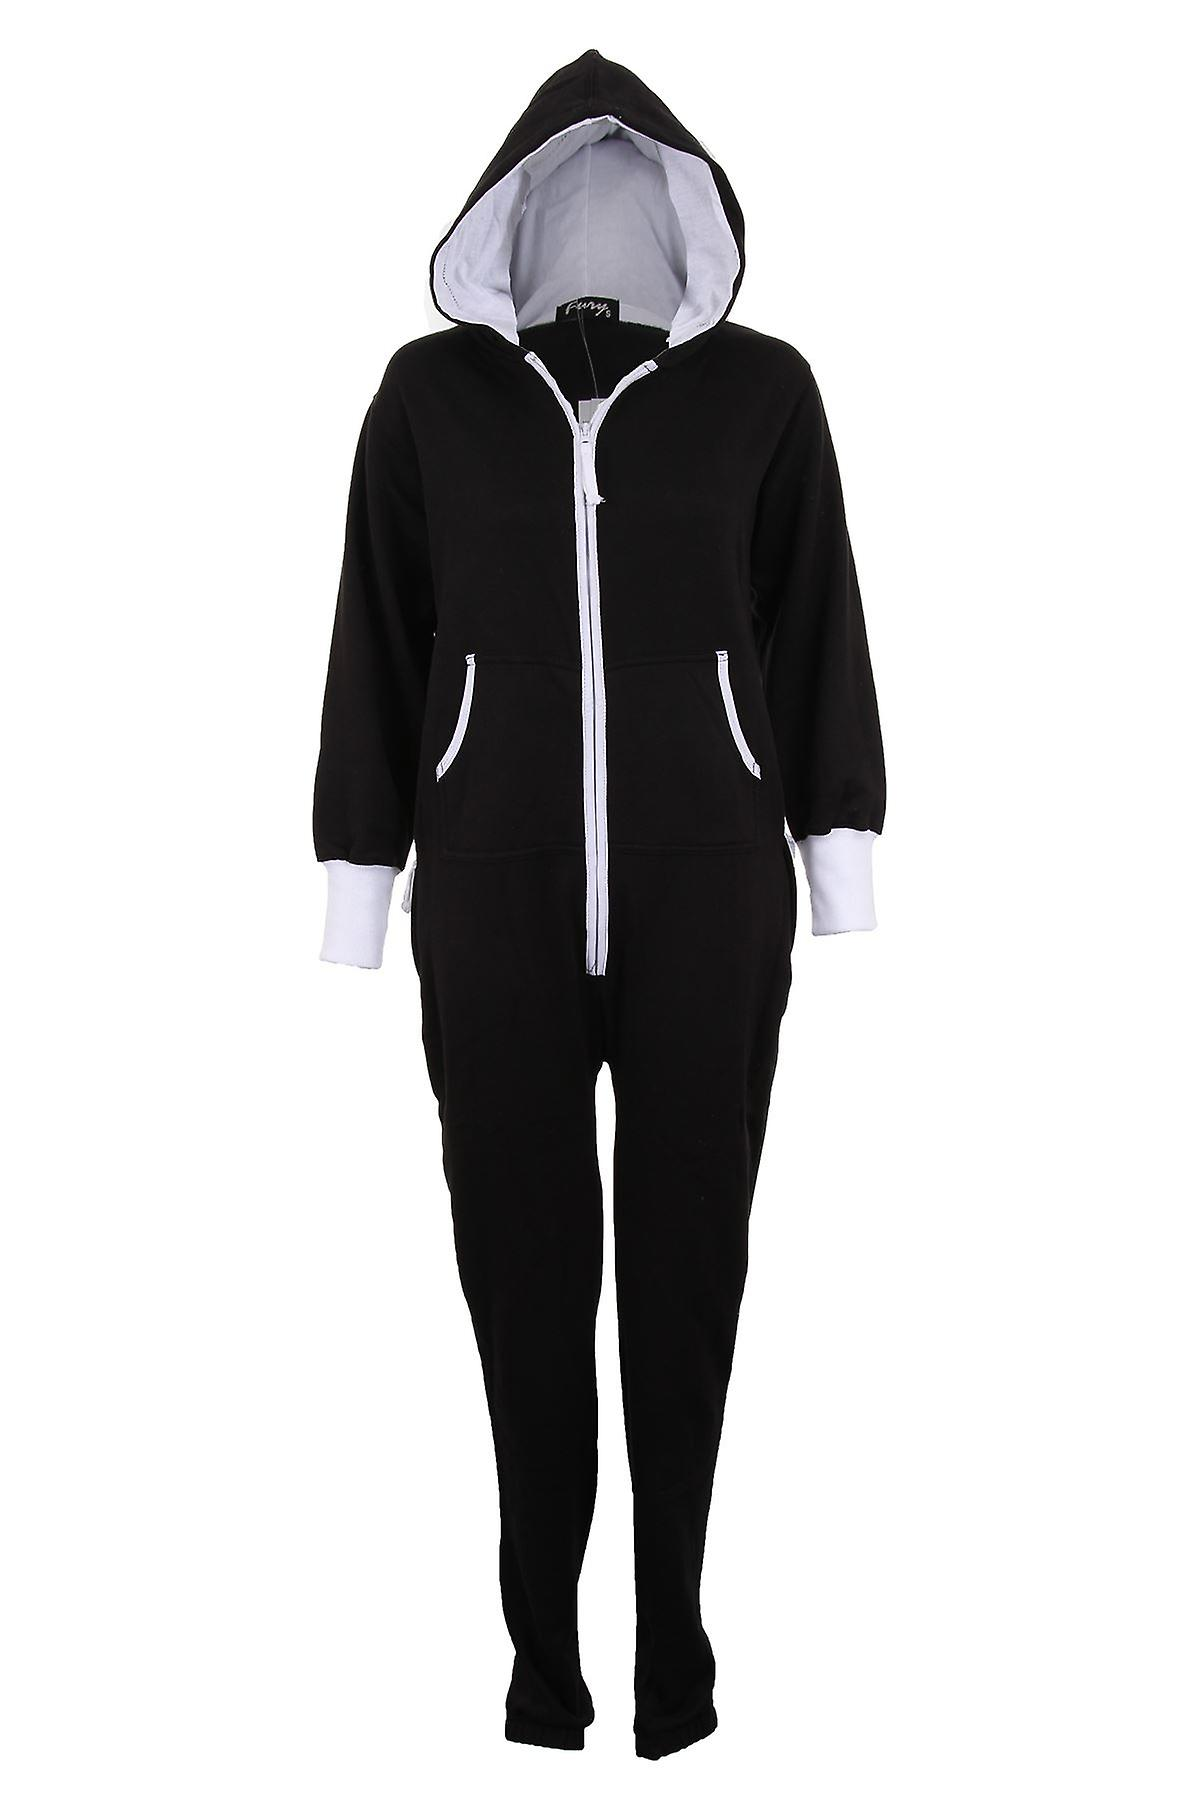 Ladies Plain Jumpsuit All In One Zipper Womens Playsuit Hooded